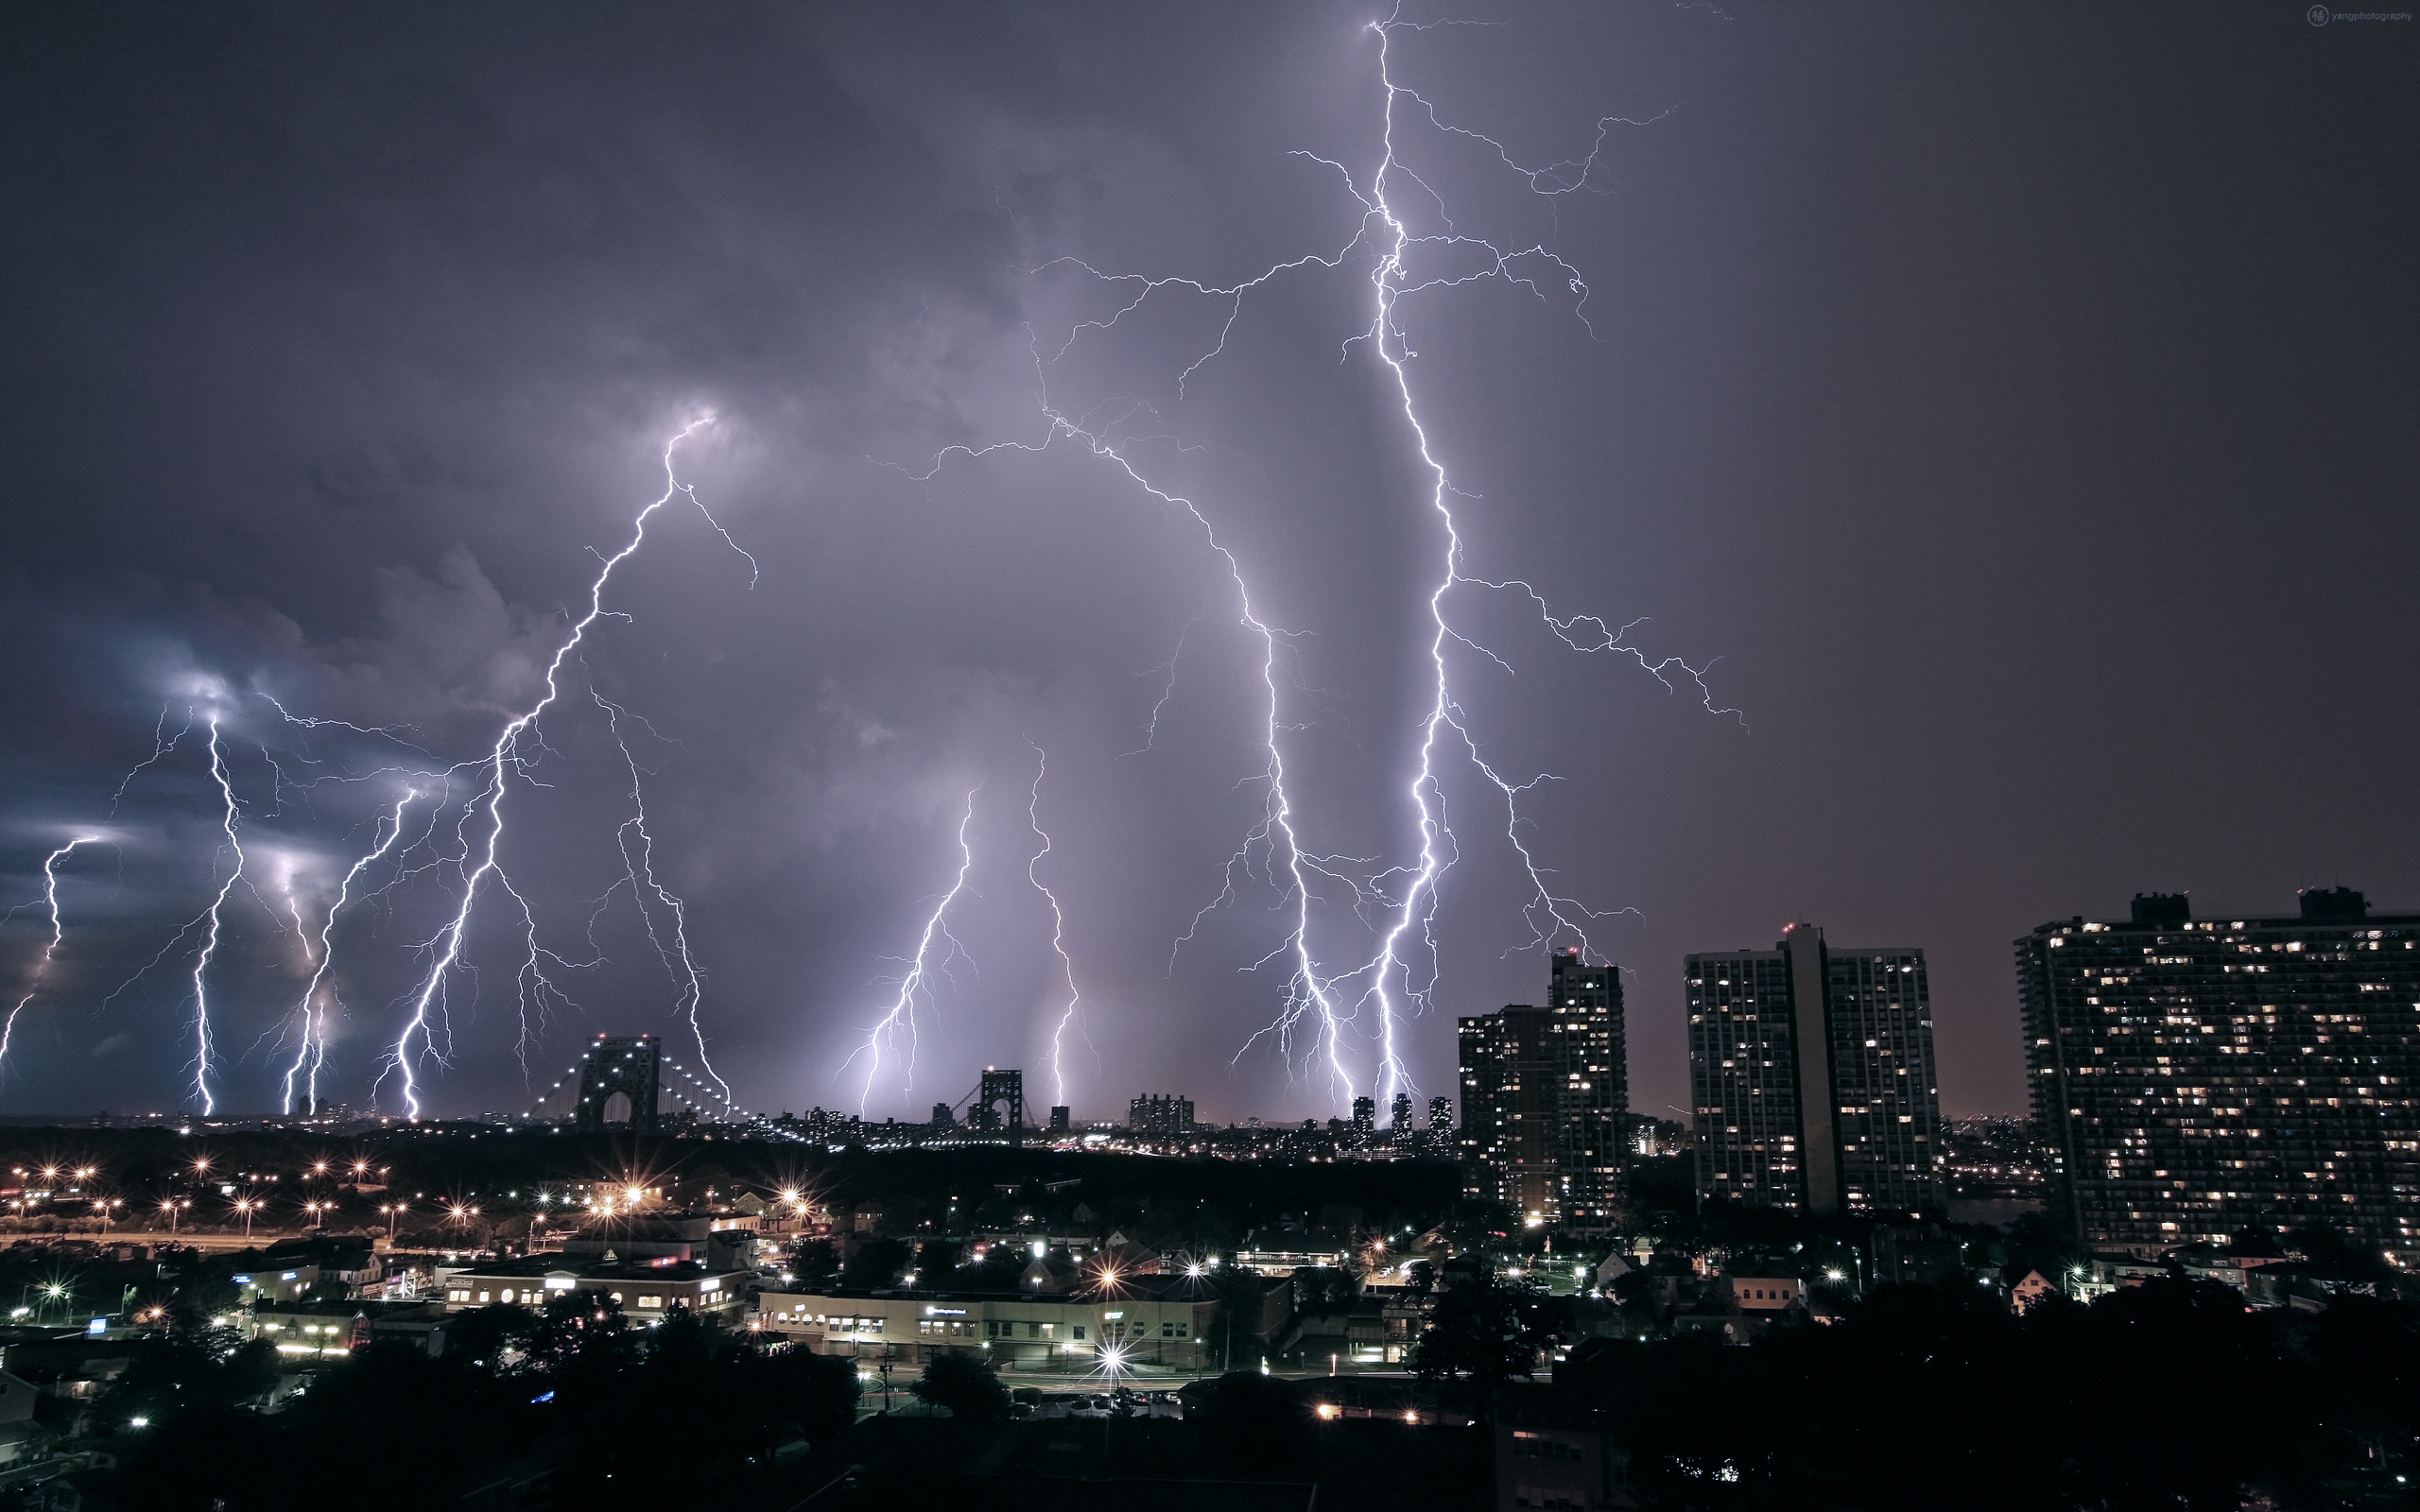 lightning live wallpaper for pc With Resolutions 25601600 Pixel 2560x1600